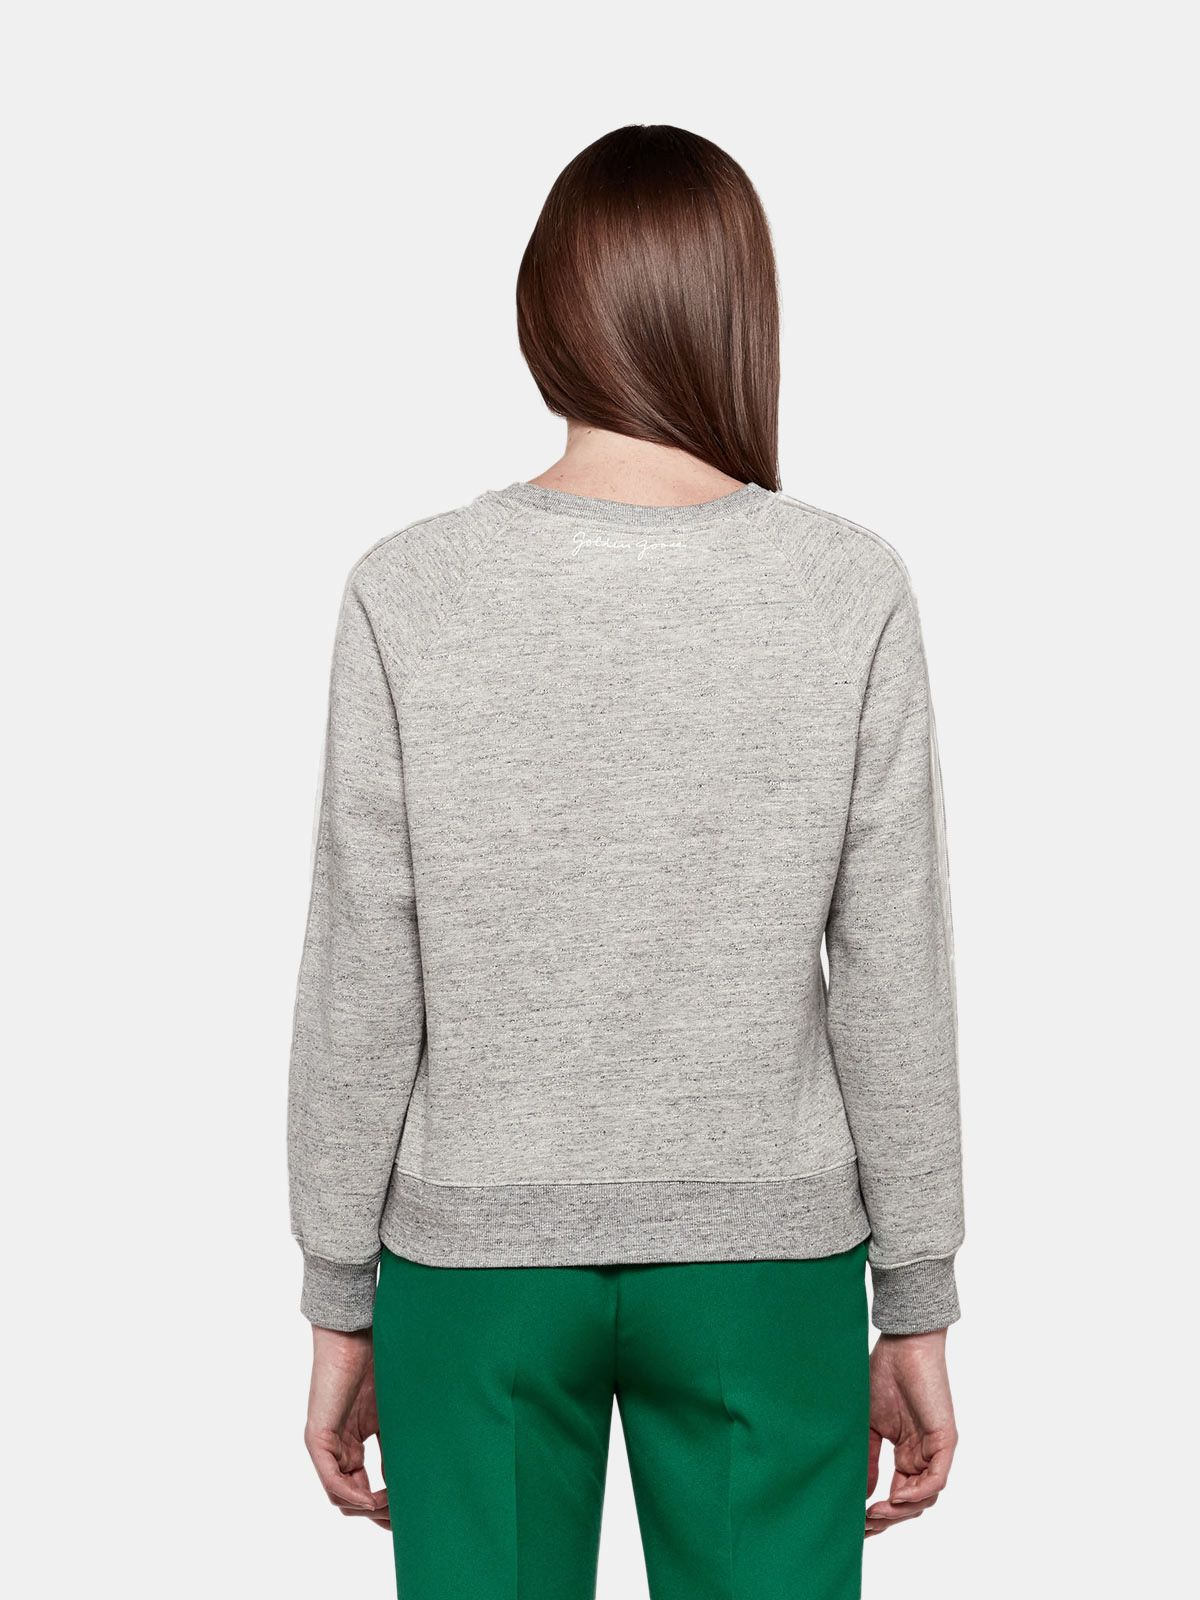 Golden Goose - Haruko sweatshirt in pure cotton with contrasting inserts in